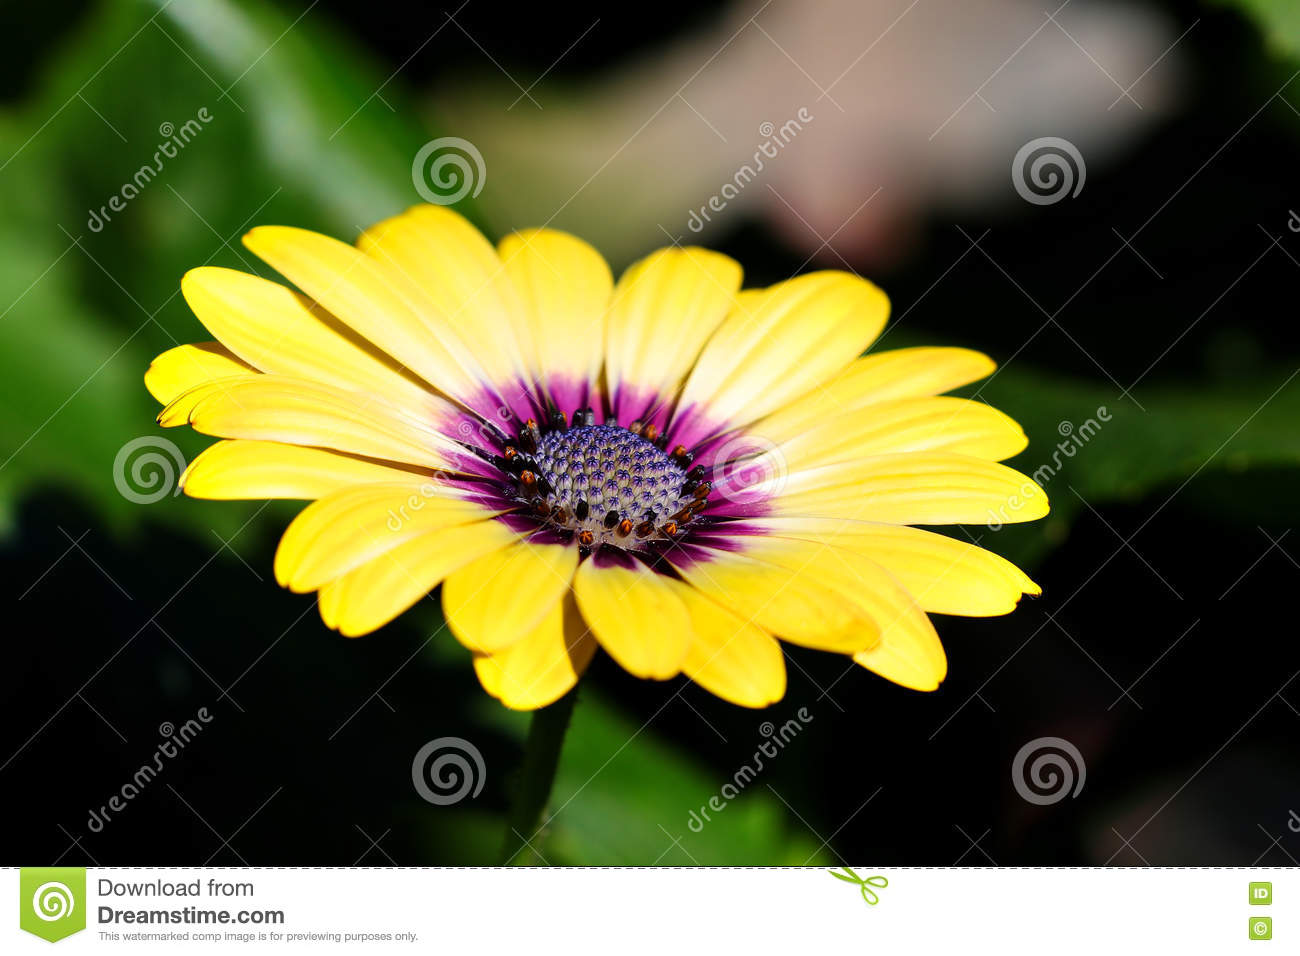 Purple Center Osteospermum Flowers Yellow Daisy Flower Daisies Stock